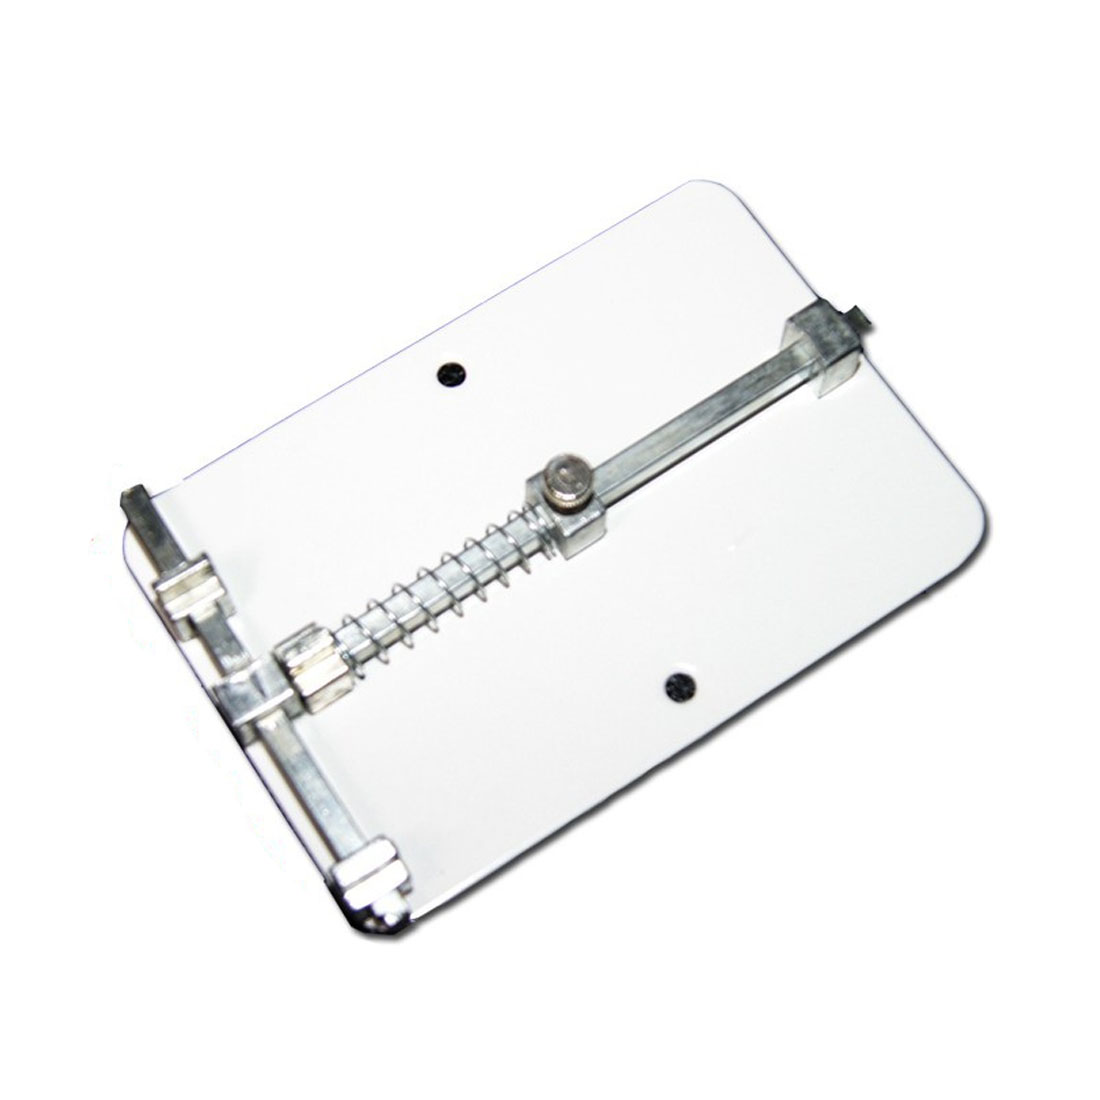 8*12cm Fixture Cell Phone Board Repair Fixture PCB Holder Work Station Platform Fixed Support Clamp Steel PCB Board Soldering